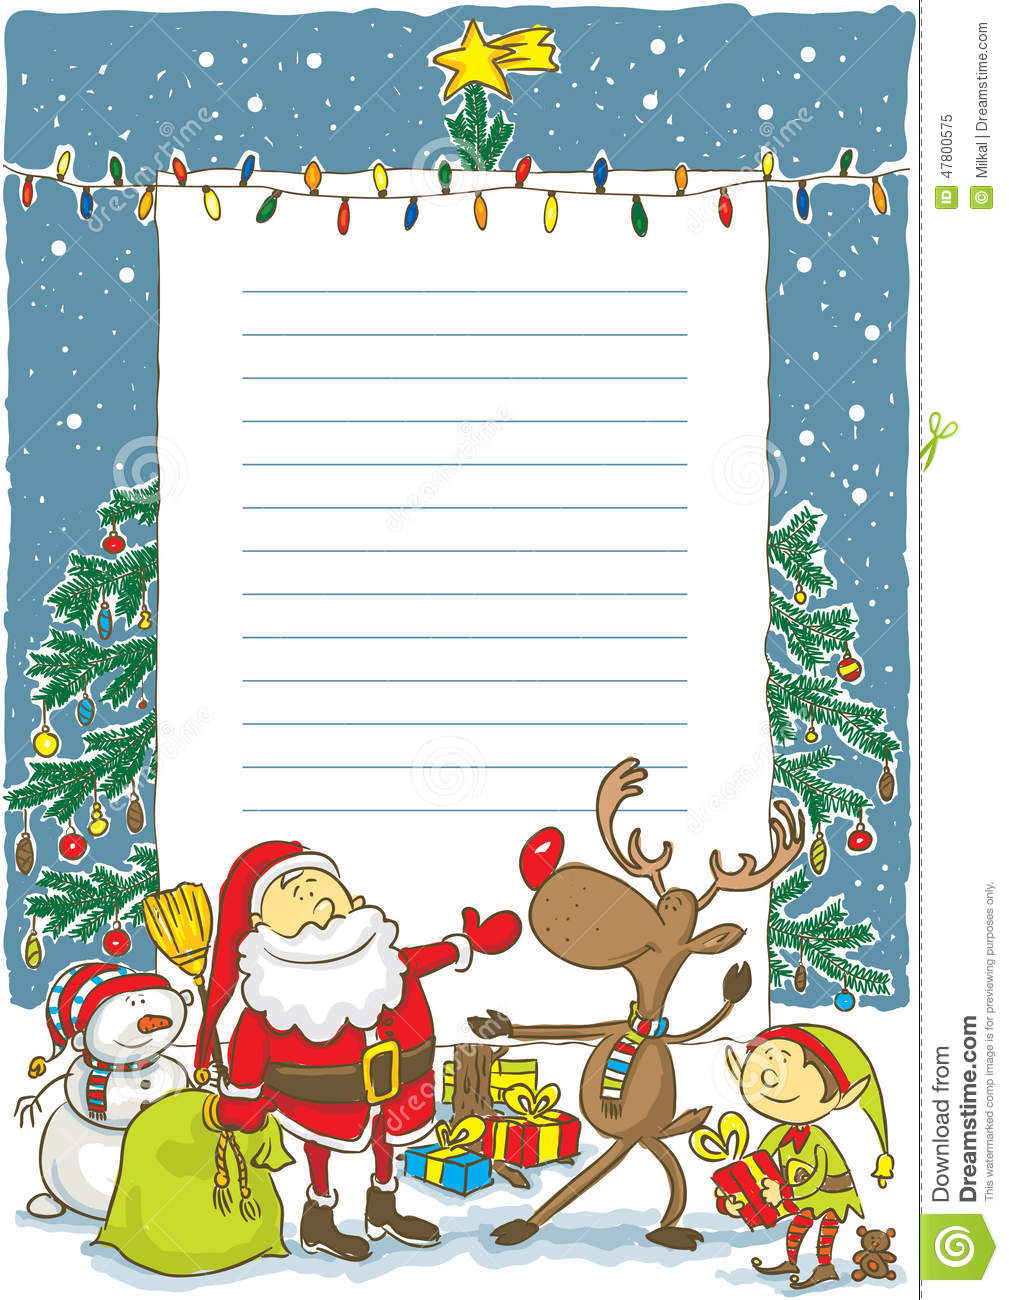 Santa With Wishlist Illustration Stock Vector